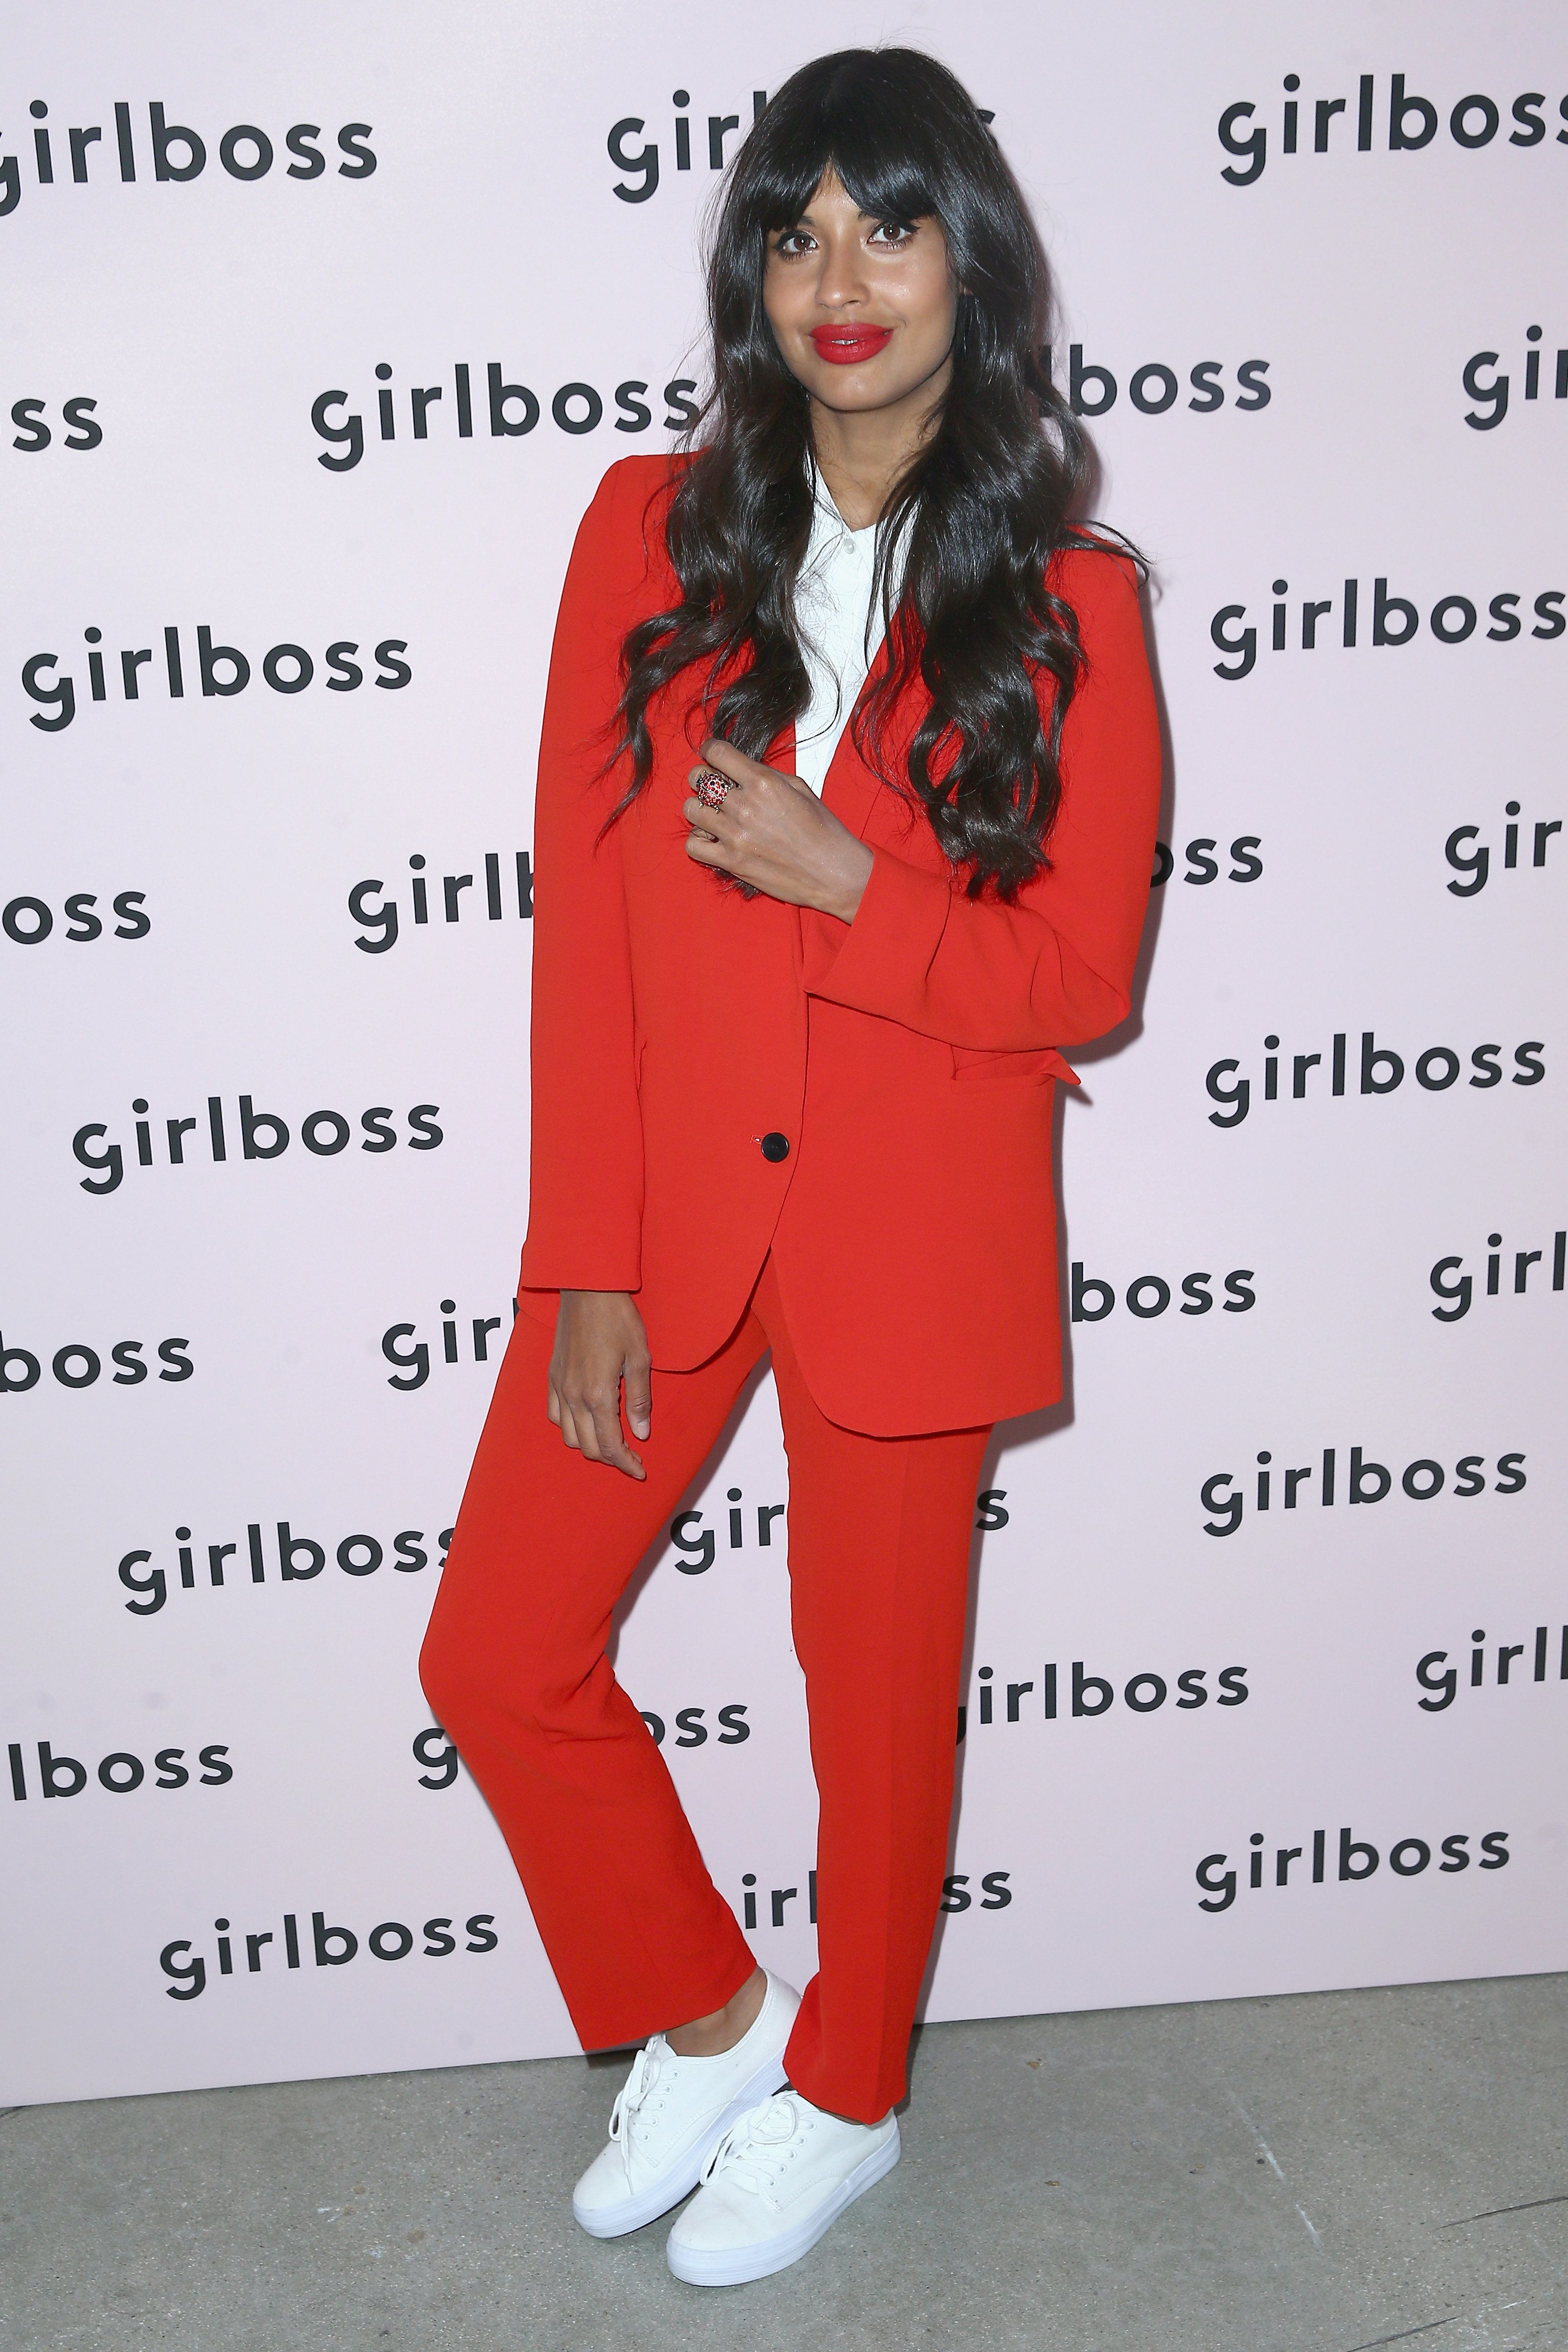 LOS ANGELES, CA - APRIL 28:  Actor and panelist Jameela Jamil attends 2018 Girlboss Rally at Magic Box on April 28, 2018 in Los Angeles, California.  (Photo by Rich Fury/Getty Images for Girlboss)